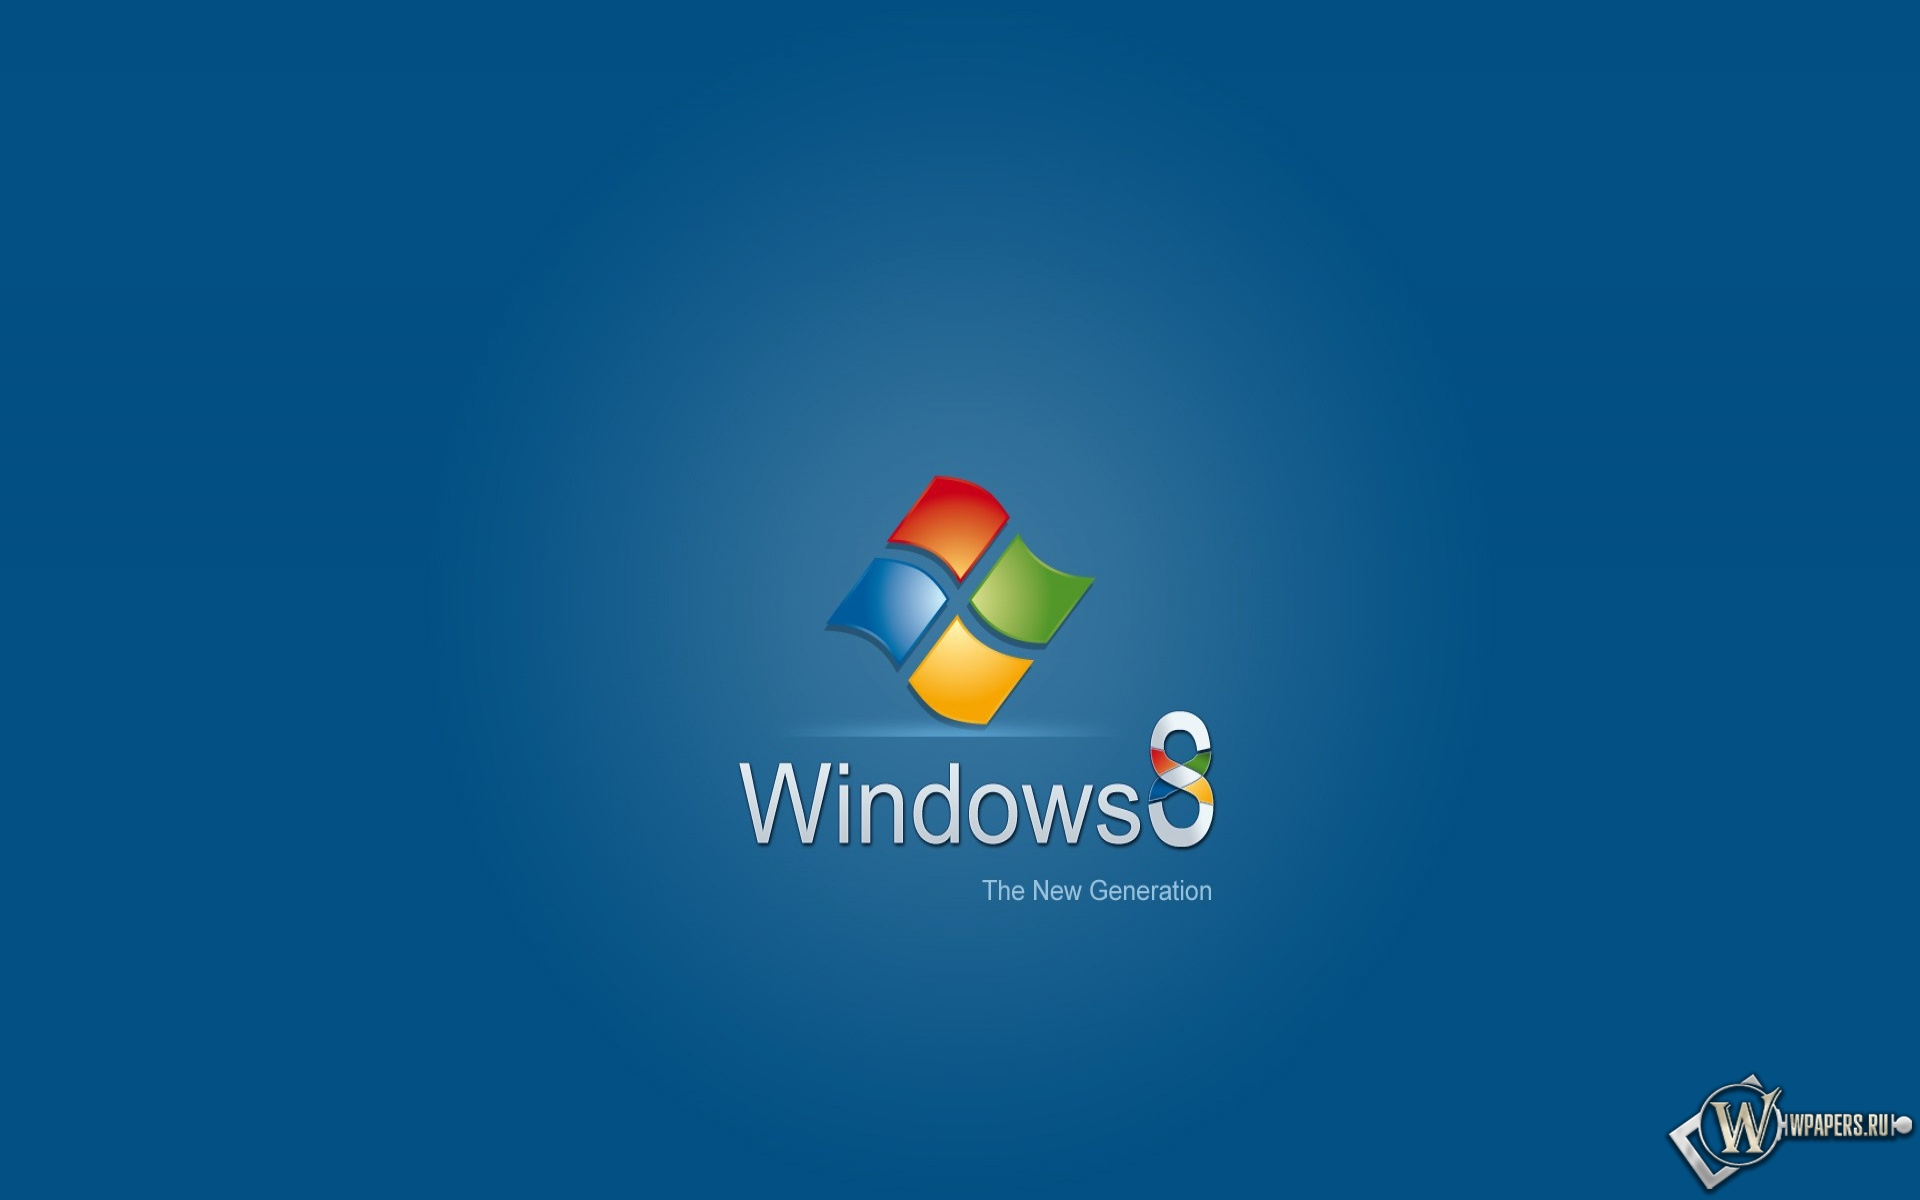 Windows 8 ne generation 1920x1200